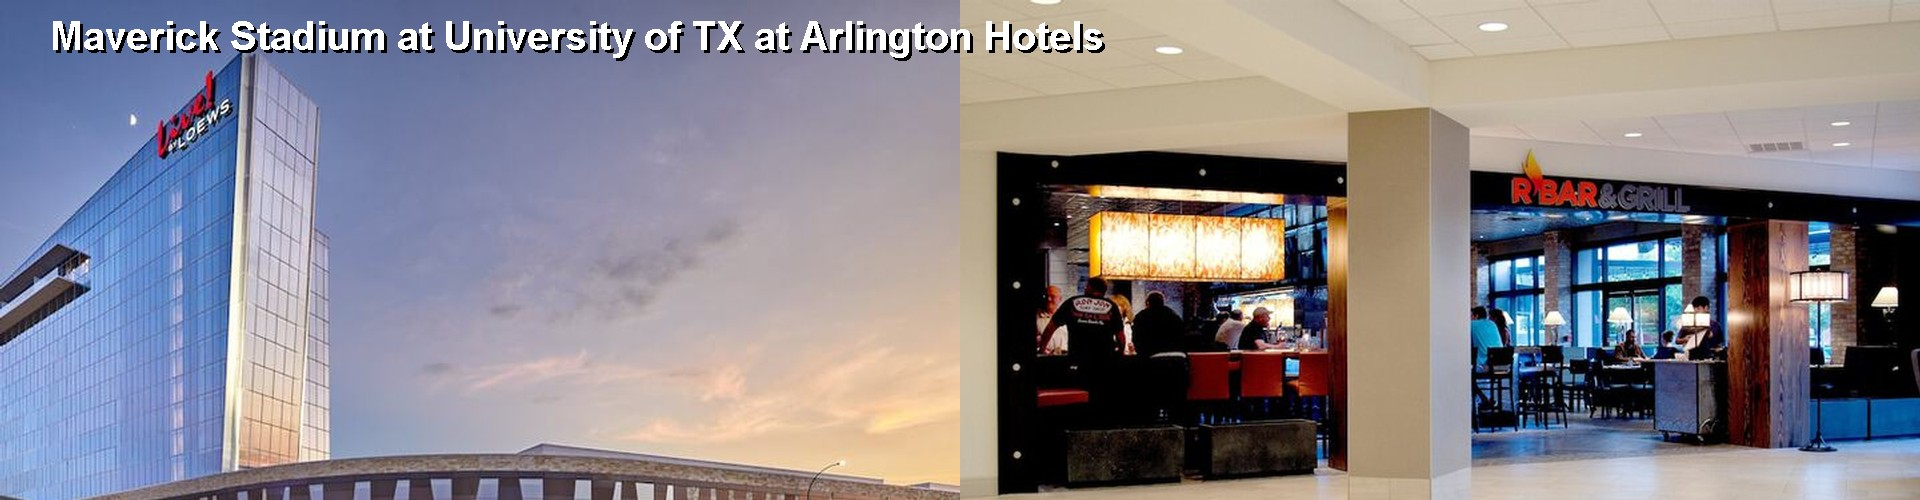 5 Best Hotels near Maverick Stadium at University of TX at Arlington